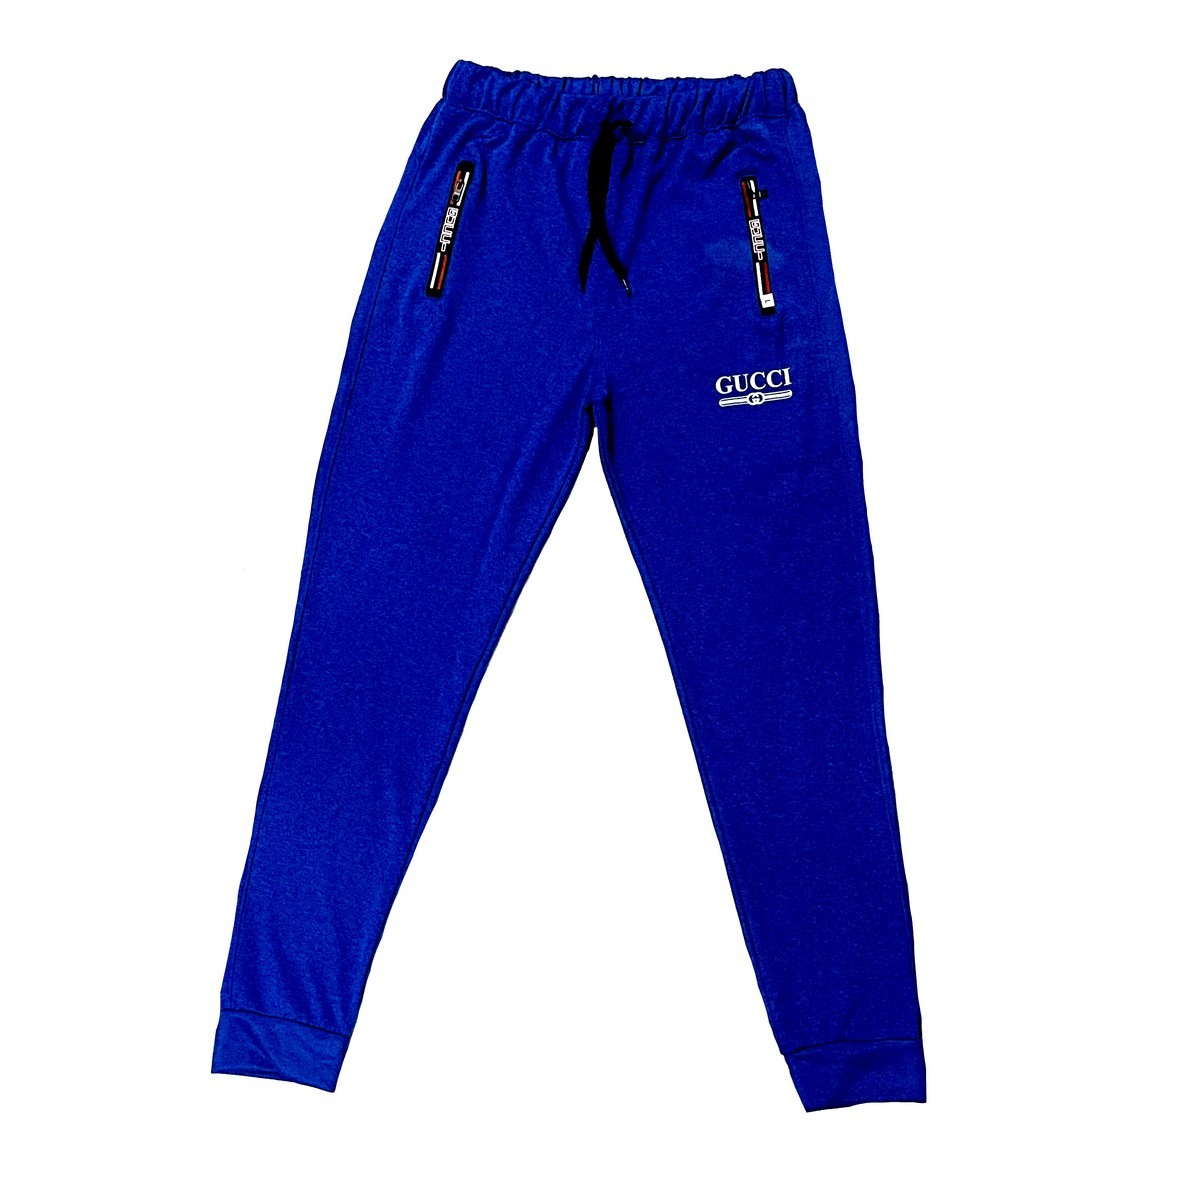 Trouser For Men / sports trousers / Gym Sports Trousers and Jogging Sweatpant Trouser For Men and Boys / Simple Trouser For Men(All Seasons)